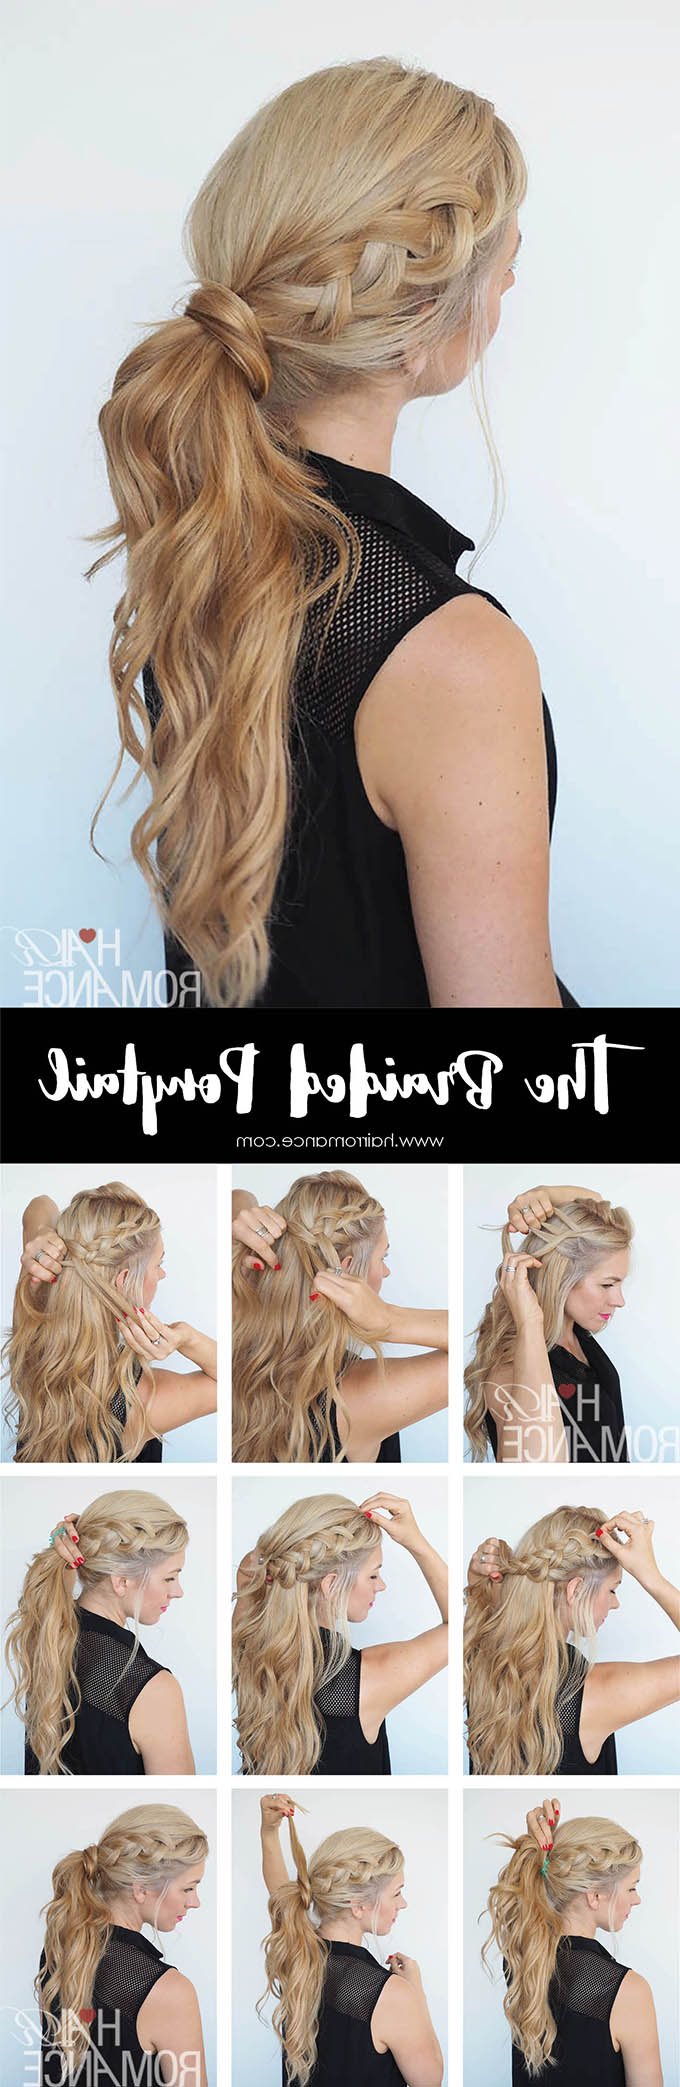 Get Out Of A Hair Rut – Braided Ponytail Hairstyle Tutorial In Most Current Ponytail Braid Hairstyles (View 9 of 20)